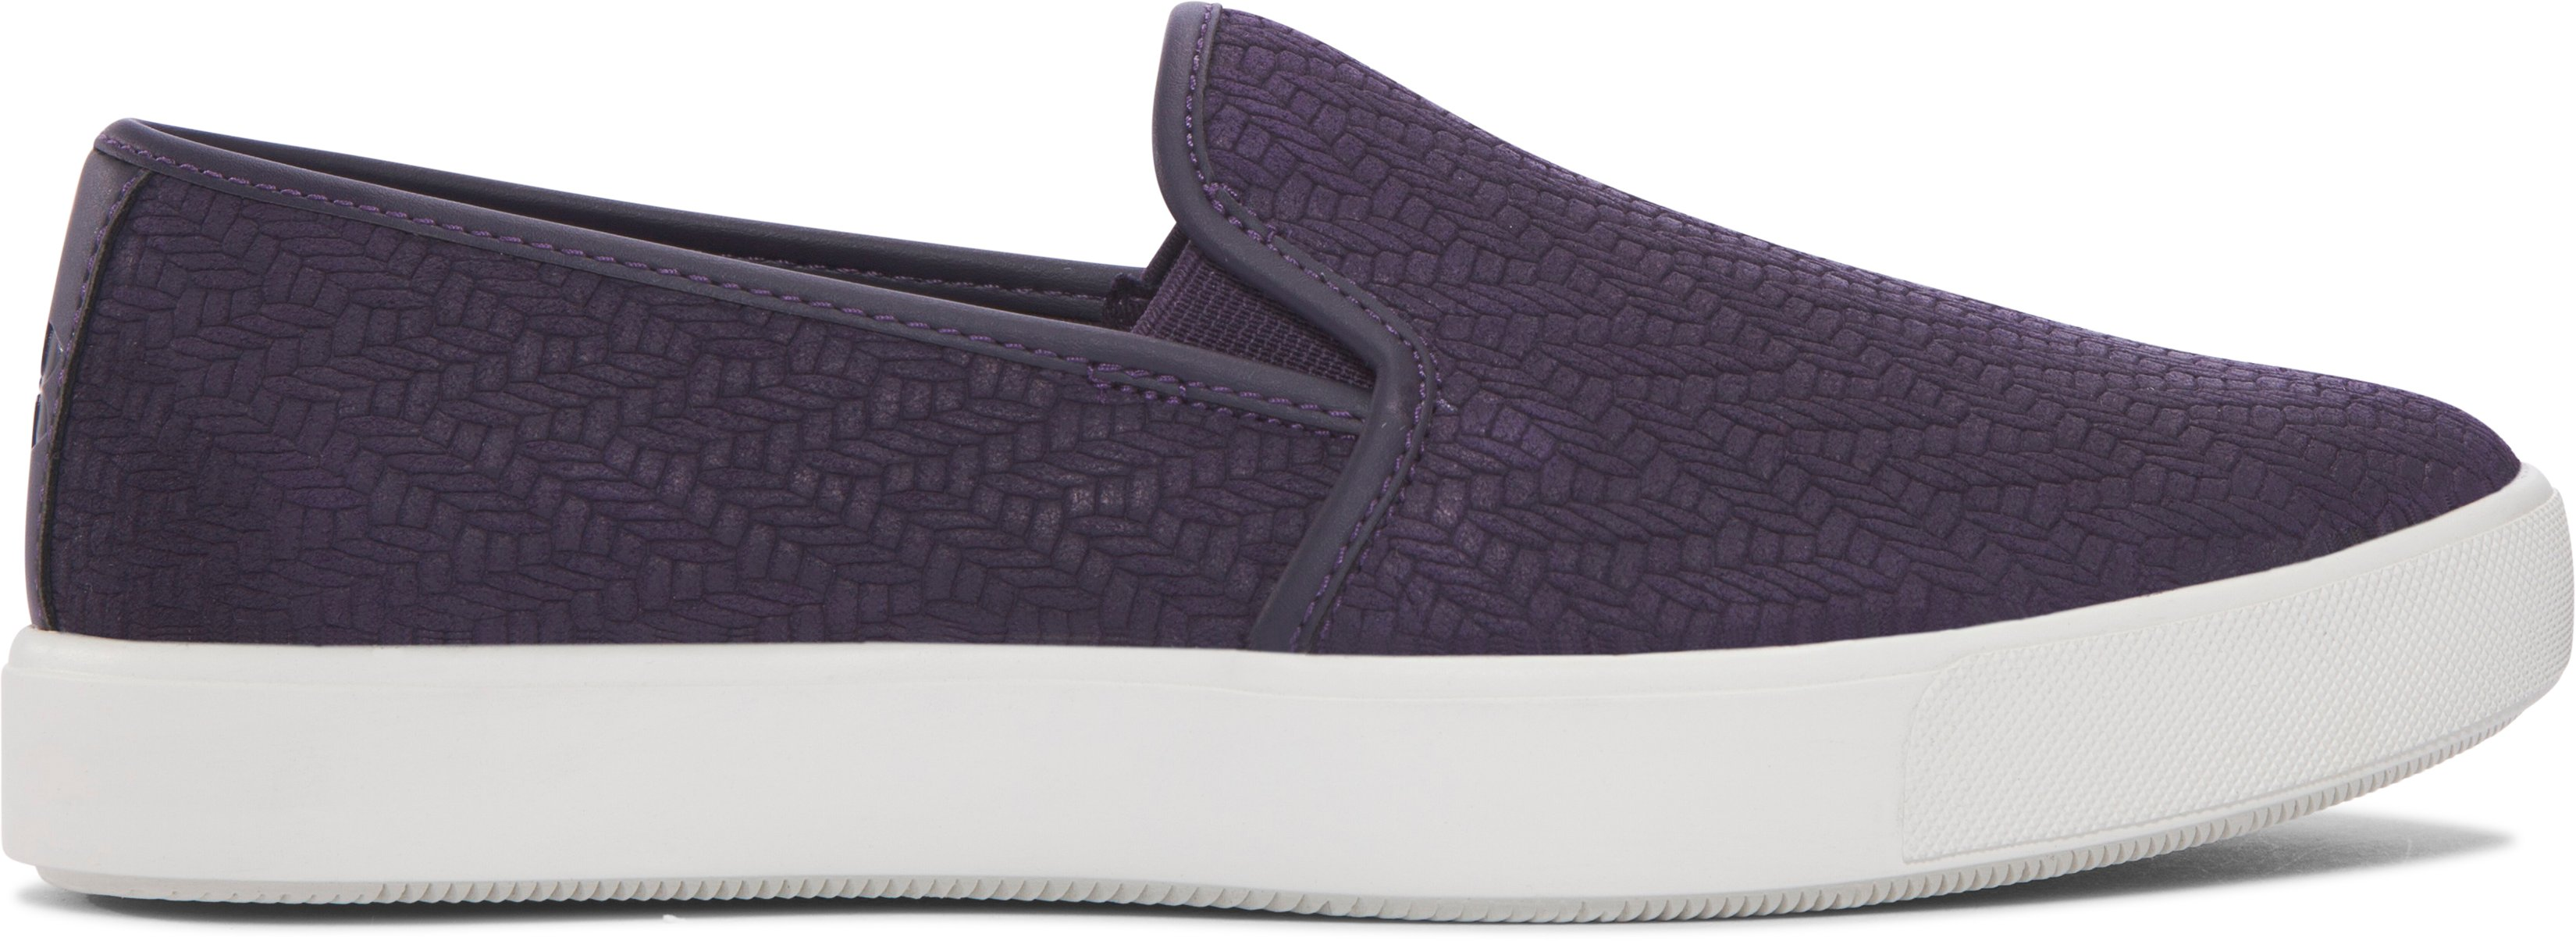 Women's UA DJ Suede Lifestyle Shoes, IMPERIAL PURPLE, undefined